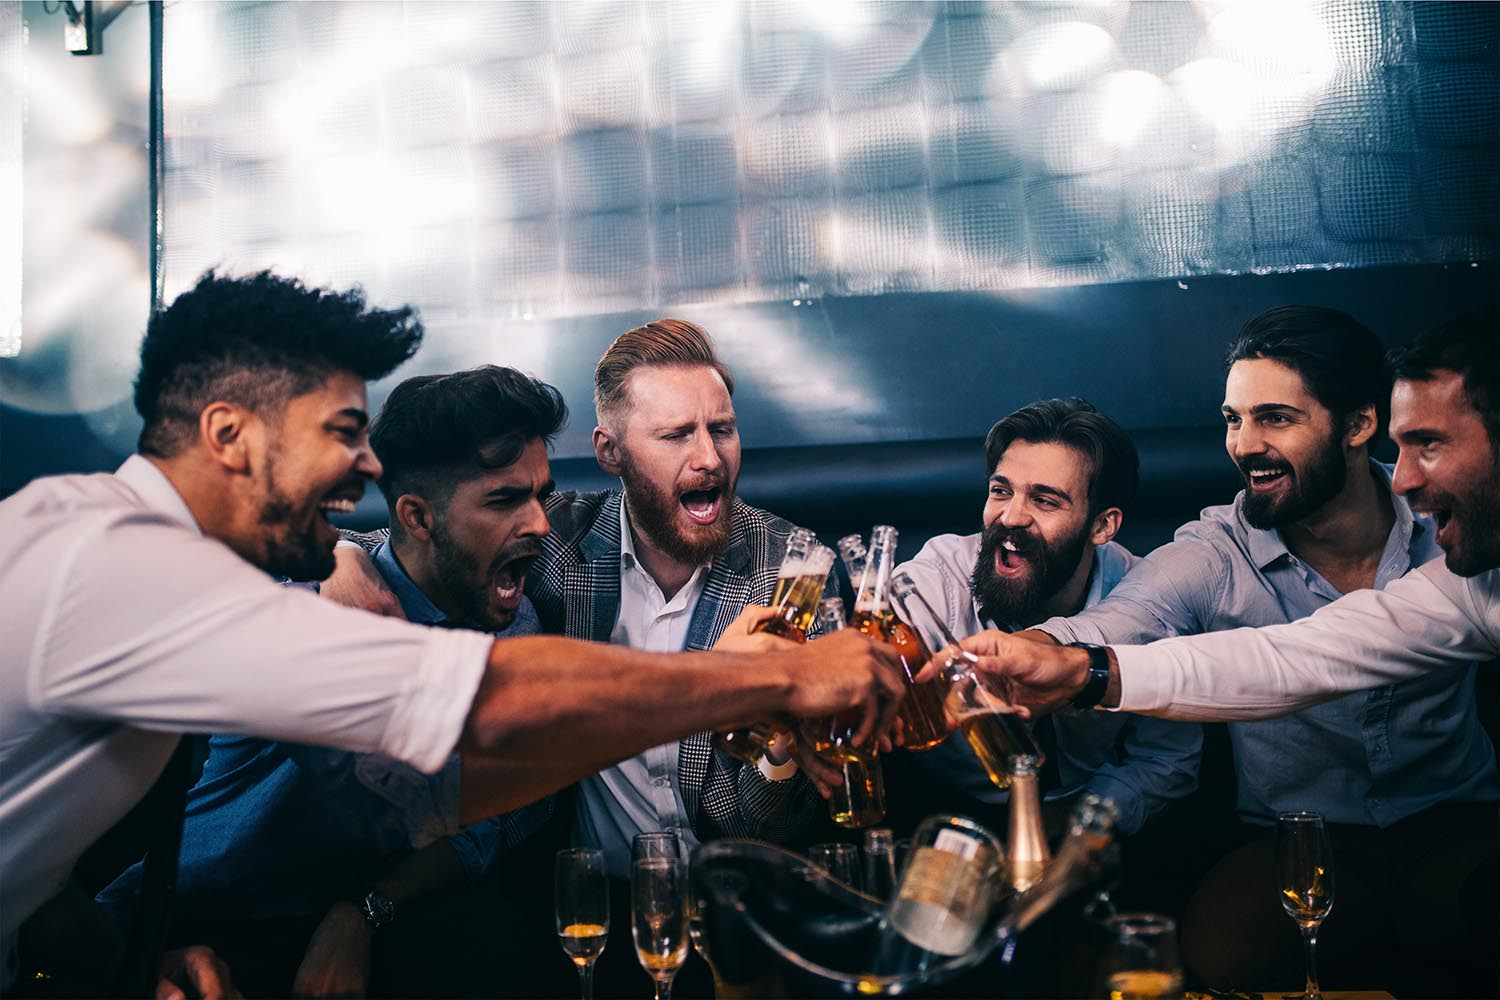 Bachelor Party With Bottle Service in Las Vegas